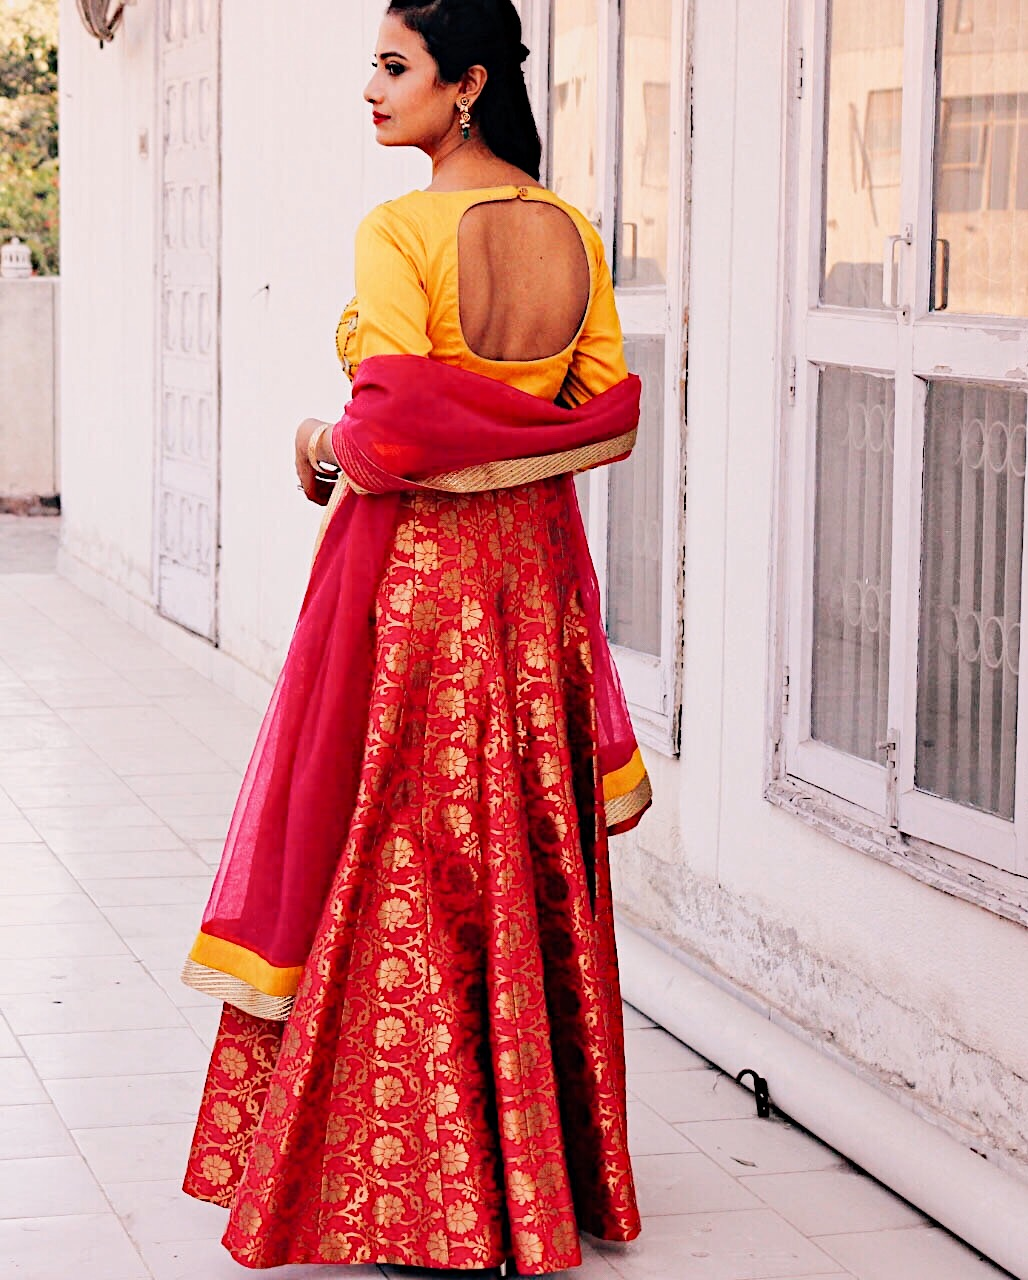 traditional indian, pink and yellow lehnga, indian bridal, trending indian, bridal 2017, traditional bridal, bridal asia 2017, benarsi, benarsi lehnga, mirror work, indian outfit, top indian blogger, uk blog, london blog, indian wedding outfit, traditional wedding outfit, wear to indian wedding, wear to indian celebration, indian embroidery, diwali, diwali outfit inspo, indian wedding outfit, hot pink lehnga, colour with hot pink, trending colours, trending indian outfit colours, missdesicouture, missdesicouture review,